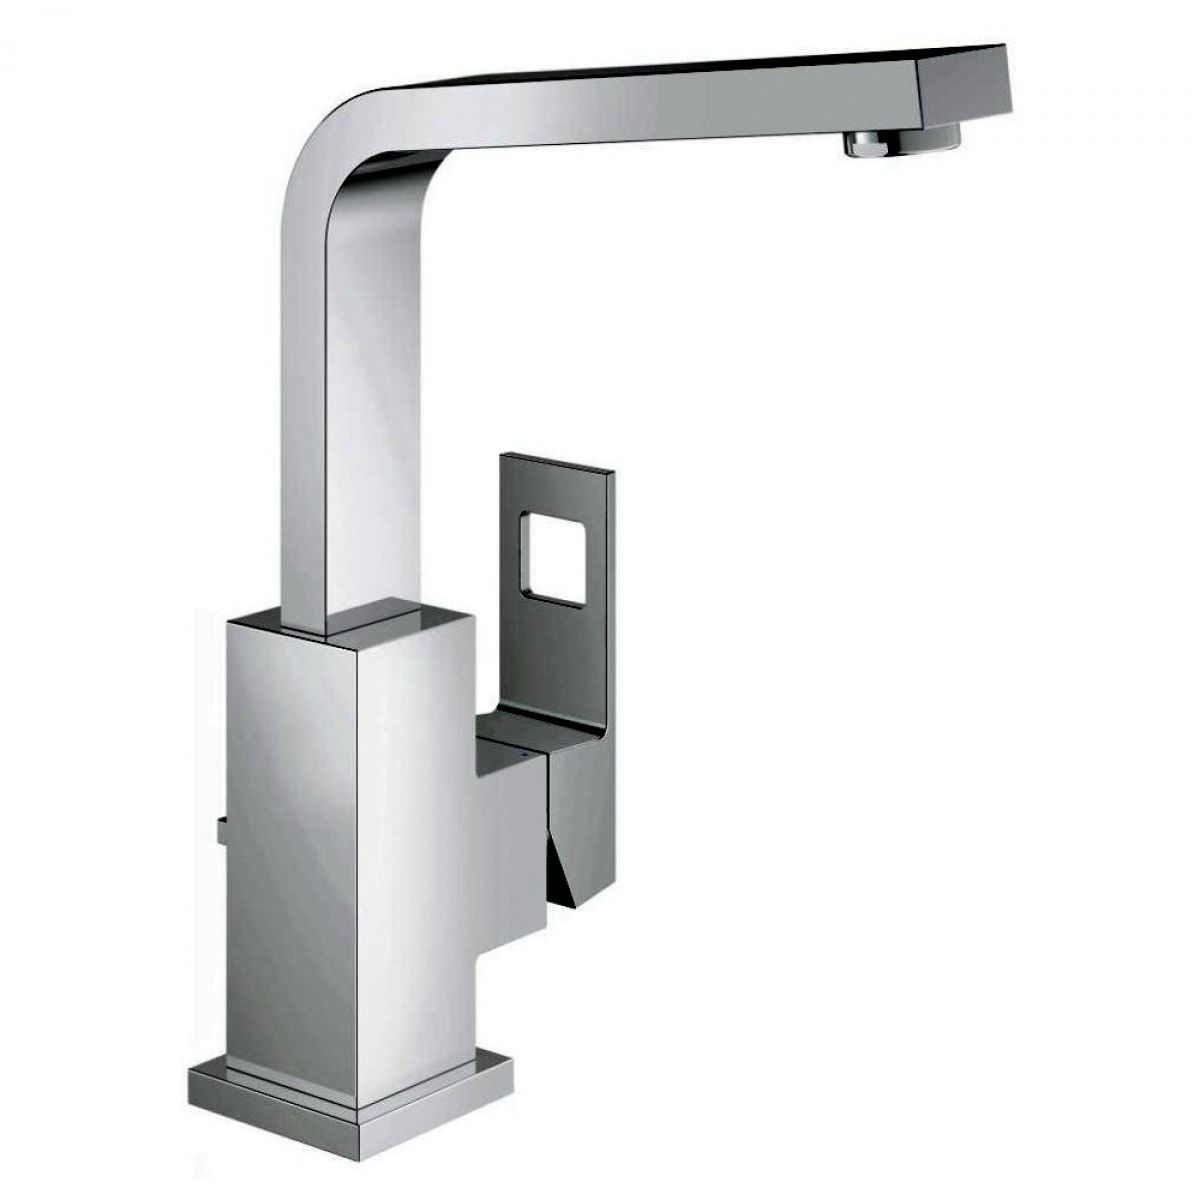 Grohe Eurocube Basin Mixer Tap with Pop-up Waste : UK Bathrooms